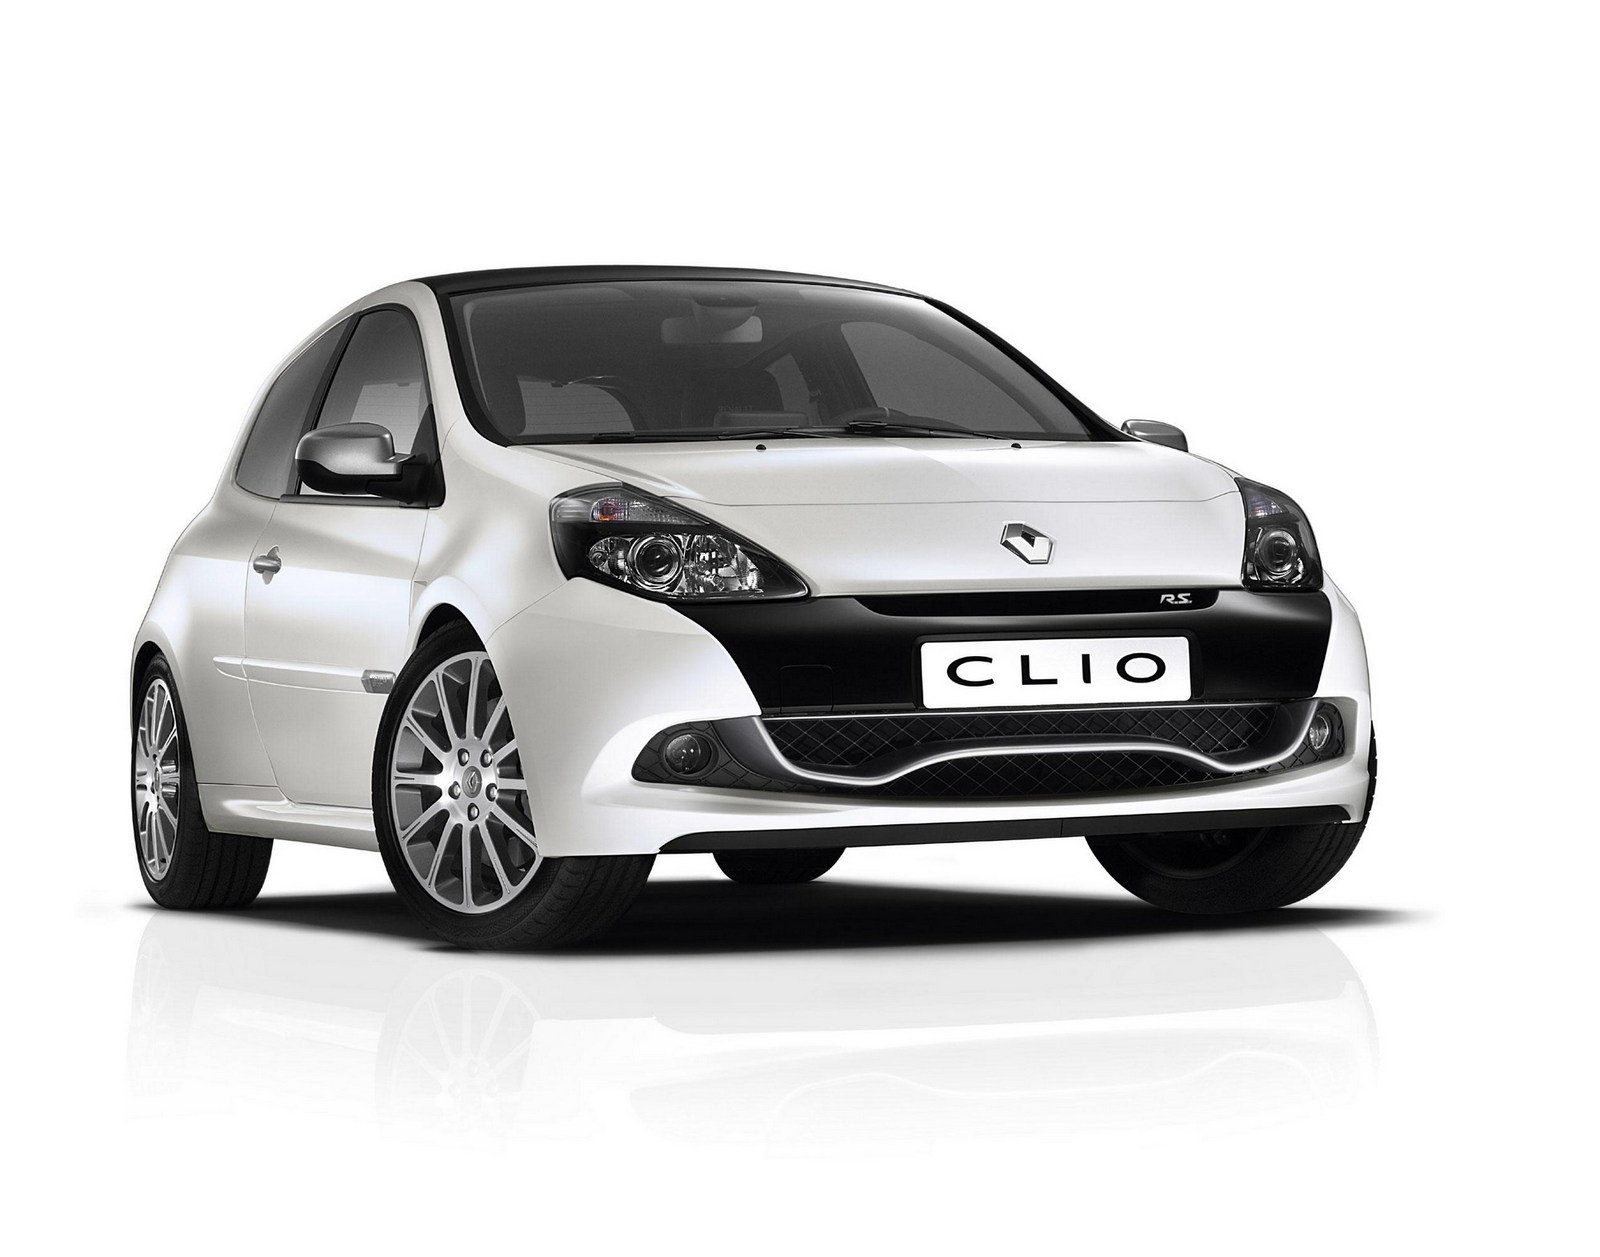 2010 renault clio rs 20th review top speed. Black Bedroom Furniture Sets. Home Design Ideas